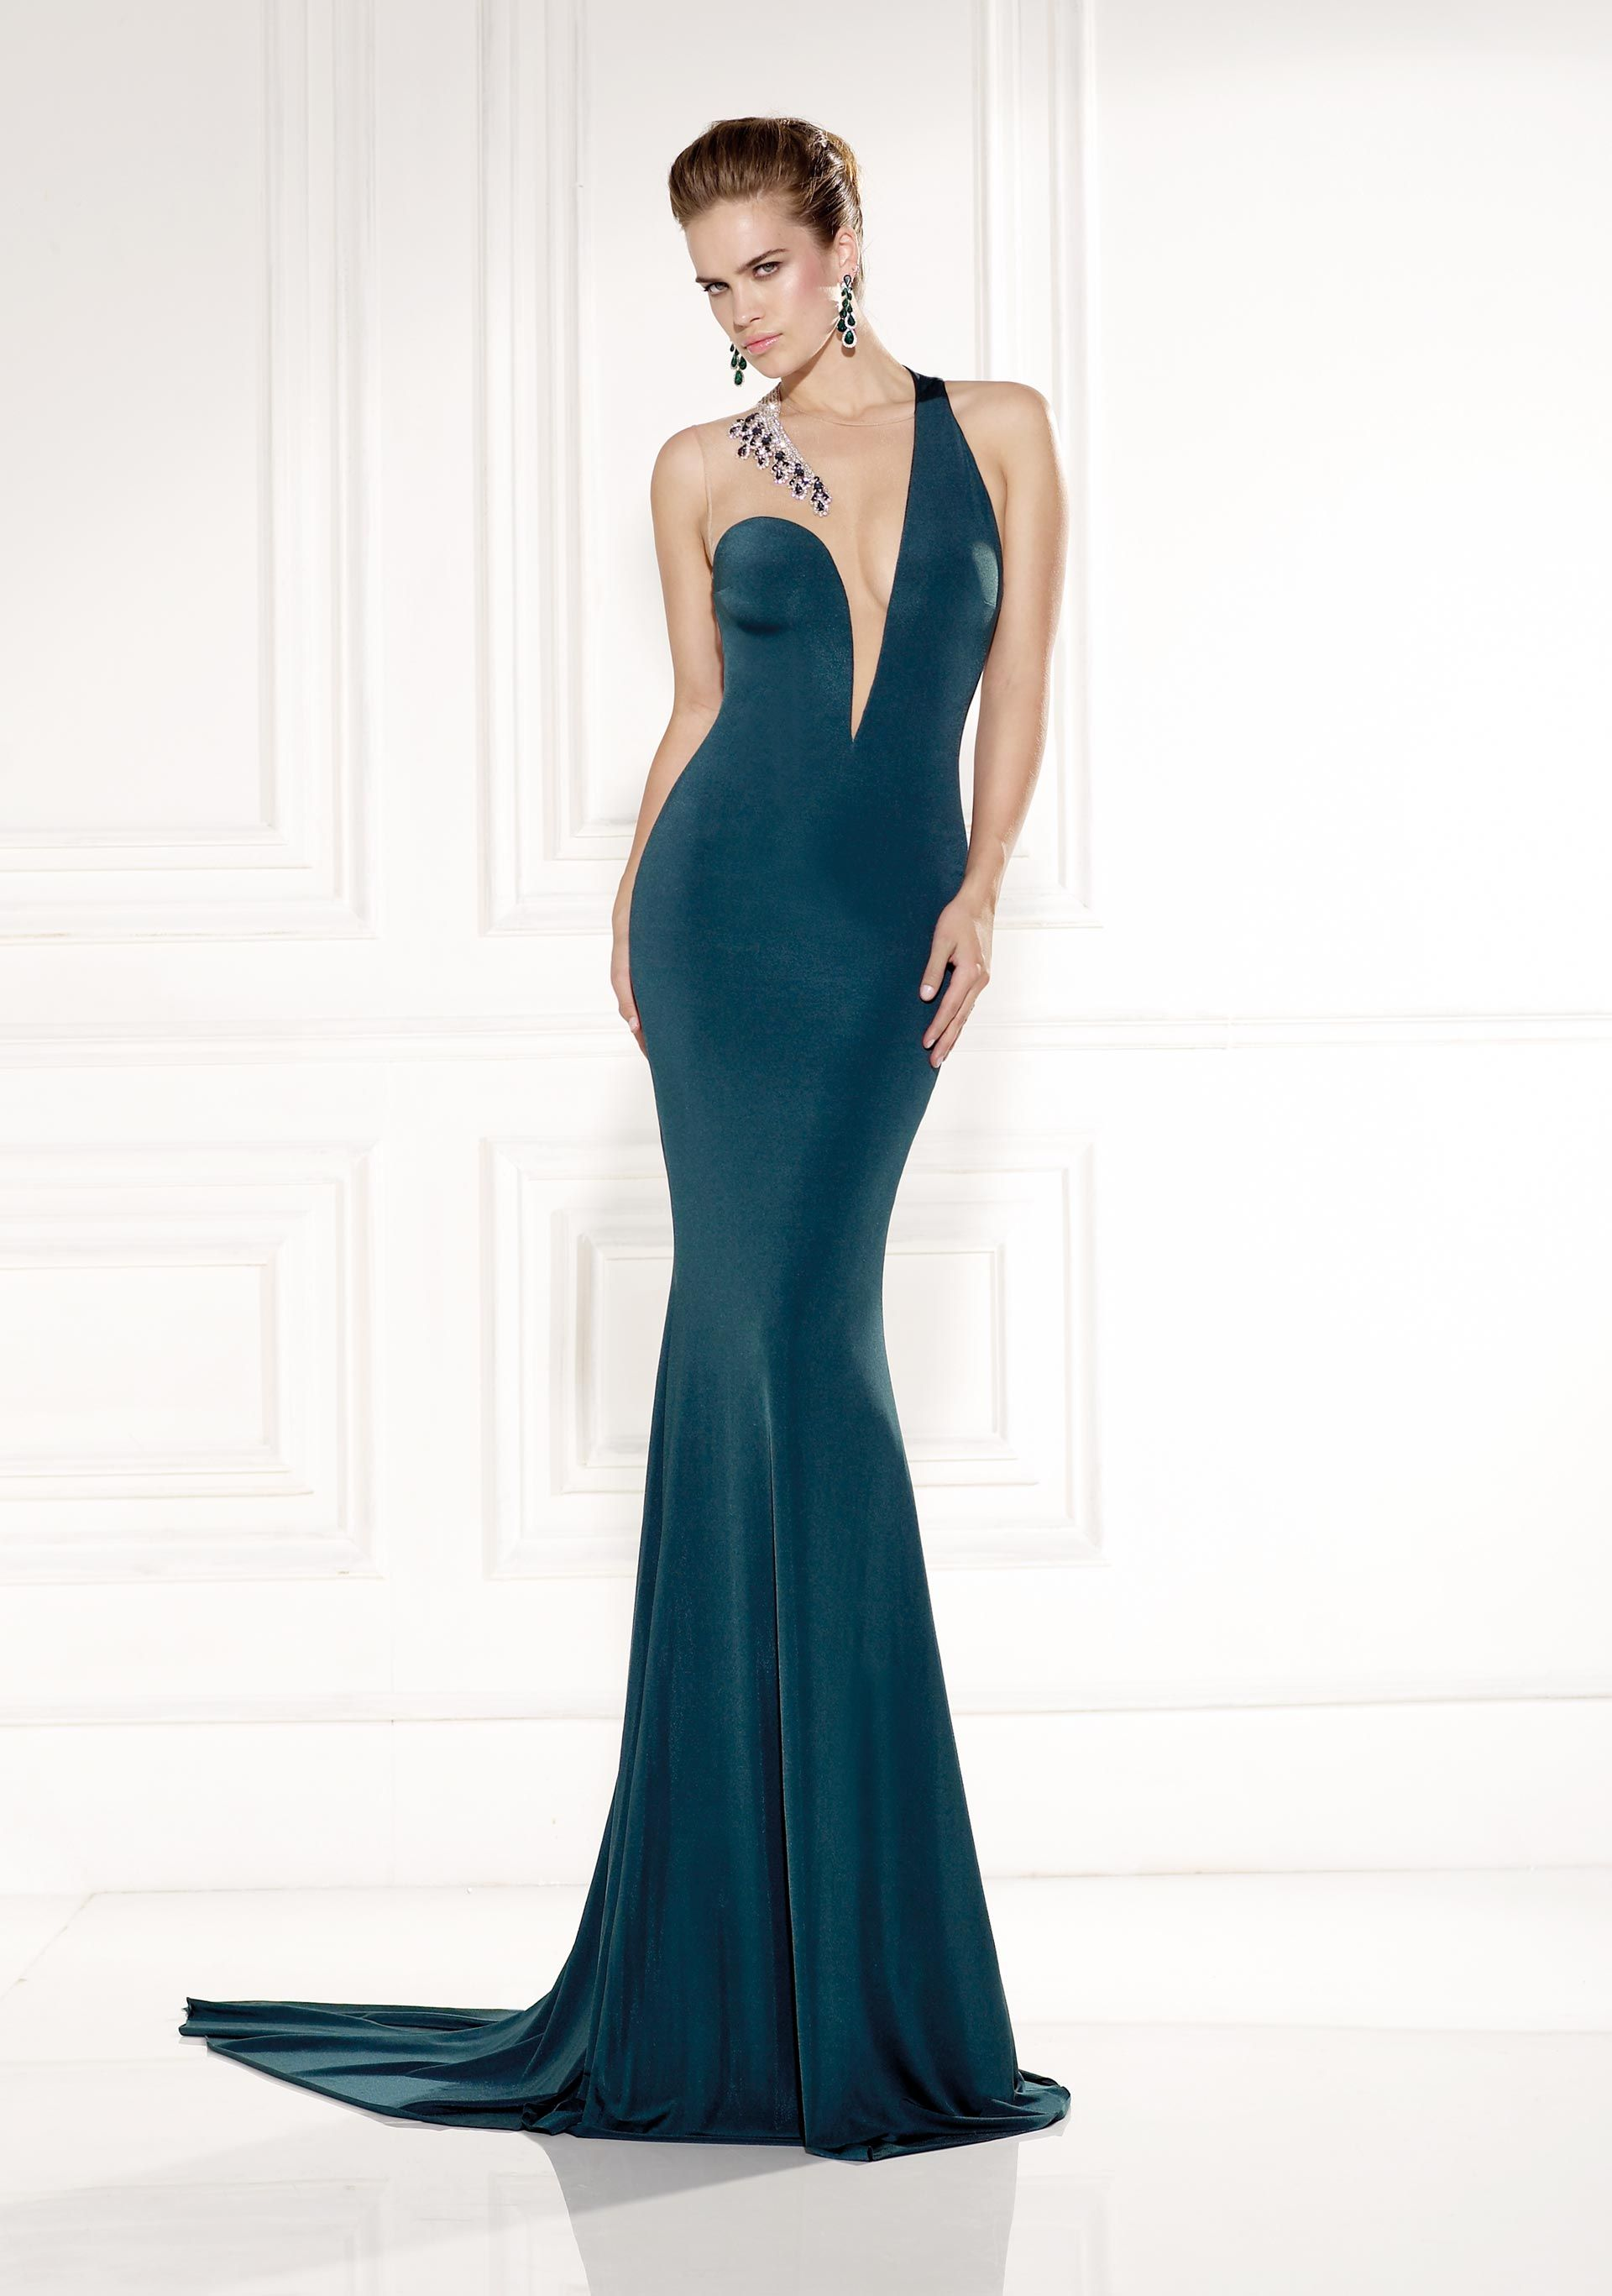 Gorgeous Teal Dress. Tarik Ediz | Prom | Evening Dresses | Abiye ...